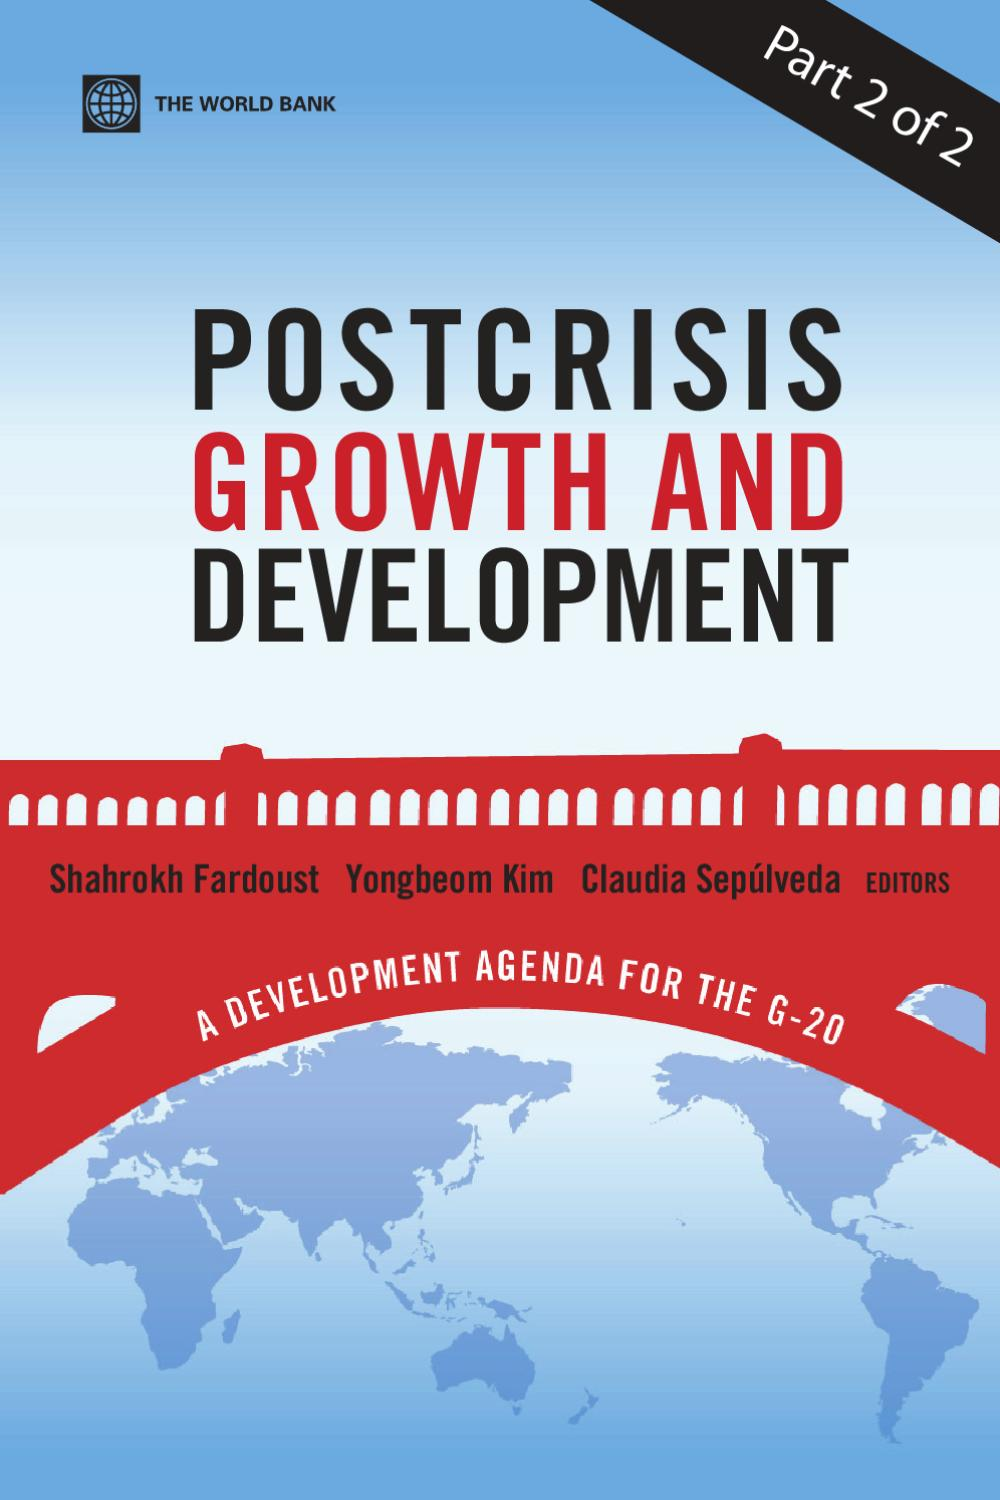 Postcrisis Growth and Development: A Development Agenda for the G-20